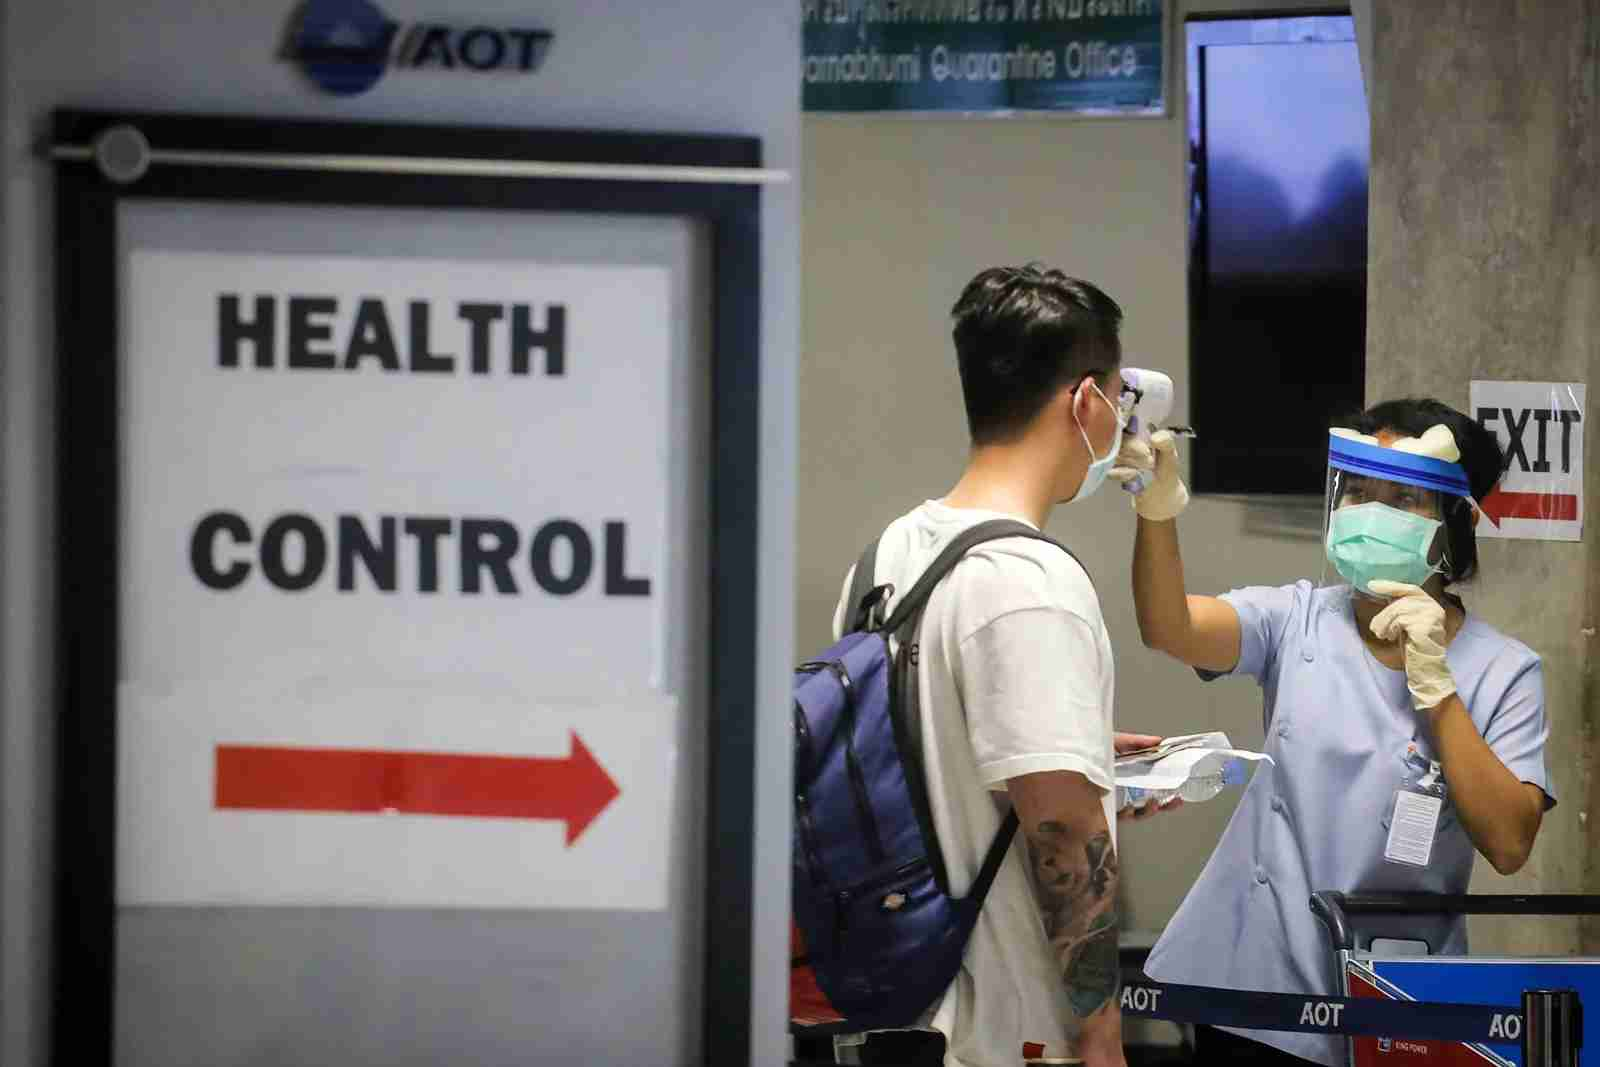 A health official checks the temperature of an incoming passenger during a health assessment at an airport checkpoint. (Photo by VIVEK PRAKASH/AFP/Getty Images)